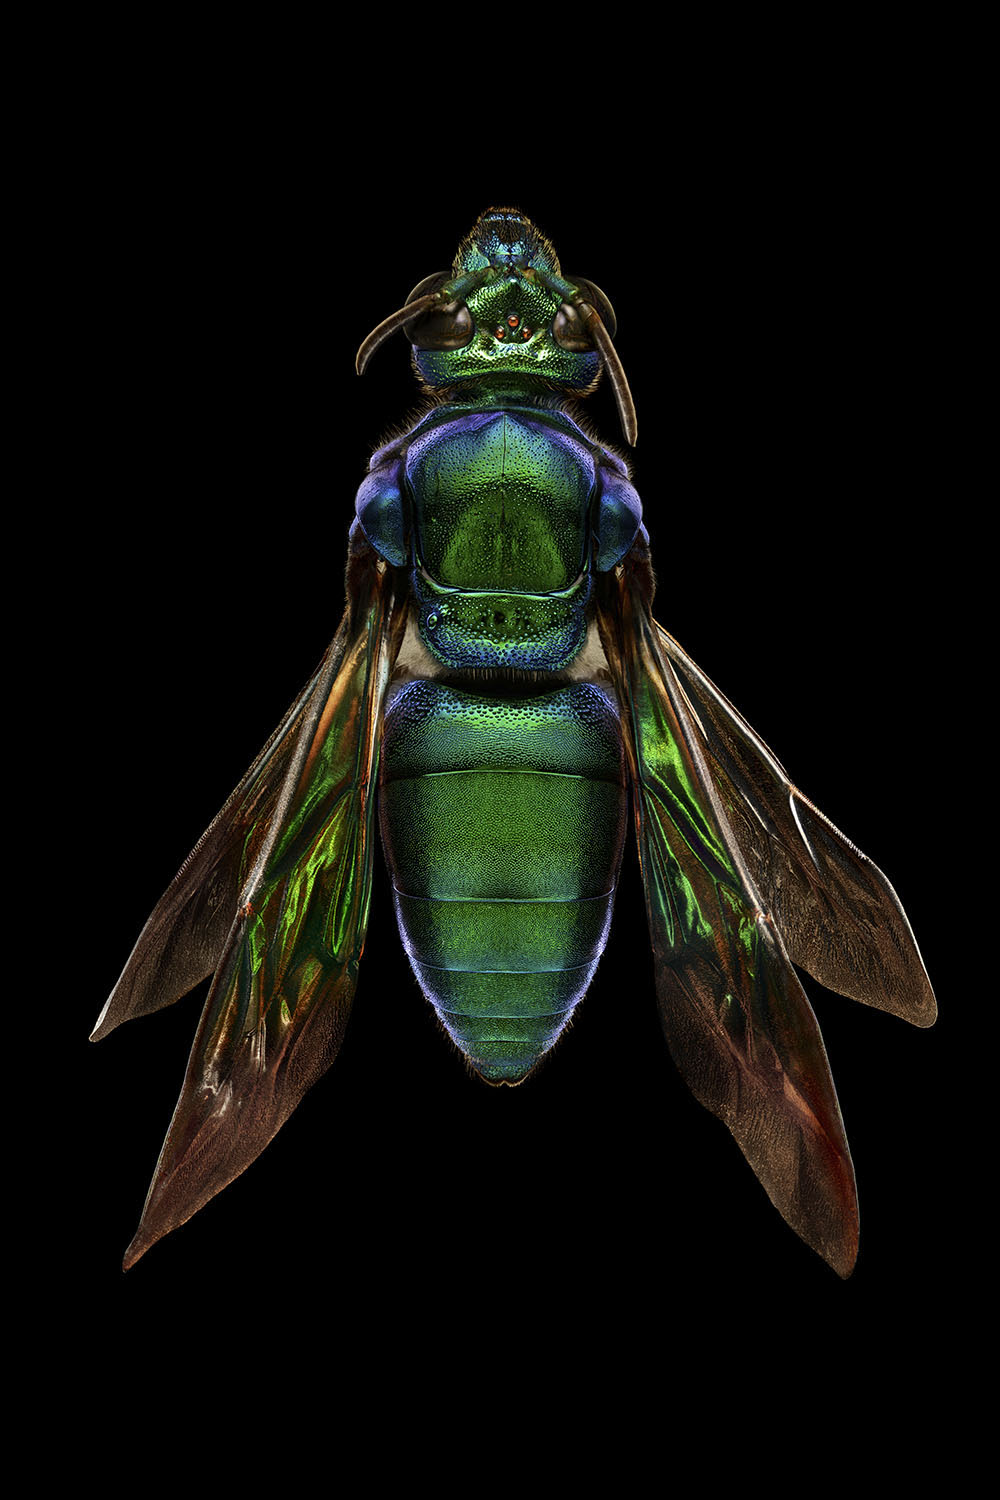 Orchid Cuckoo Bee_Top View_3240MB.jpg